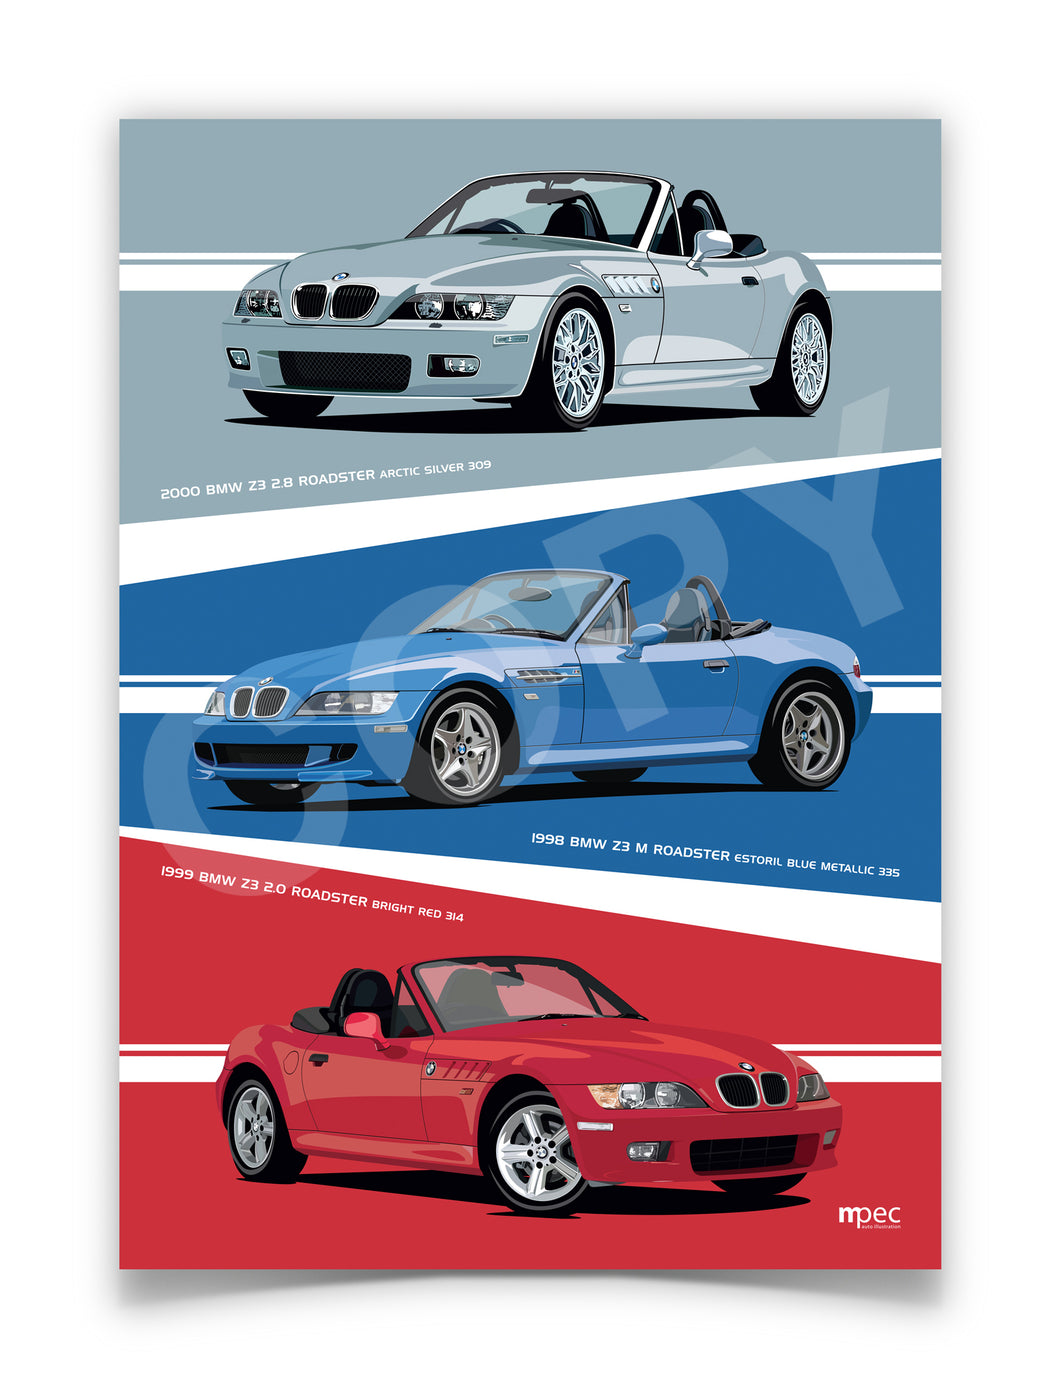 Combined Illustration of BMW Z3 Roadsters